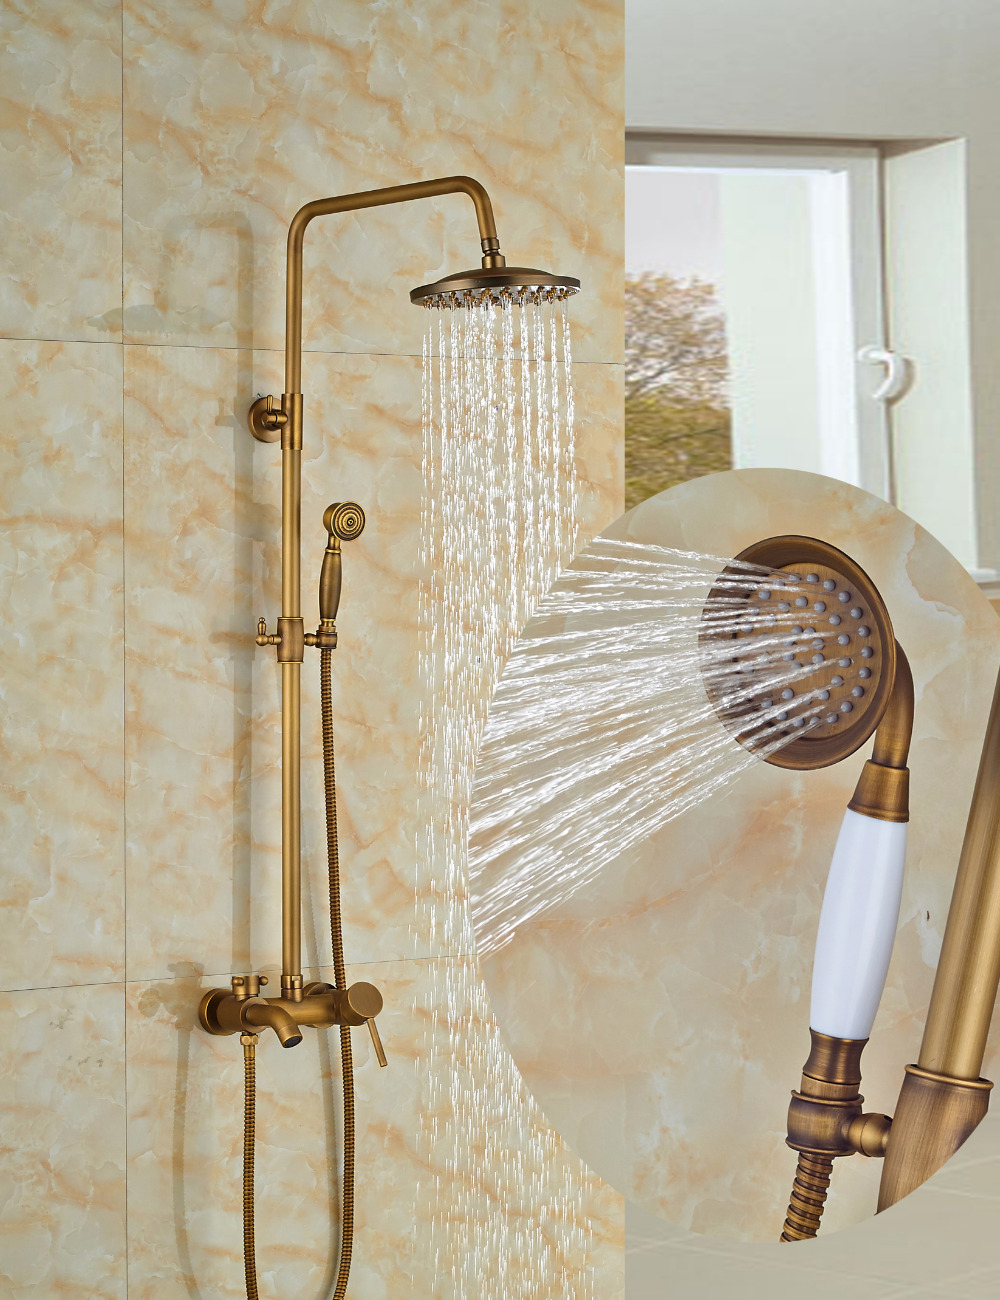 Wholesale And Retail Antique Brass Tub Spout Valve 8 Round Rain Shower Faucet w/ Hand Held Shower Mixer Tap Wall Mounted